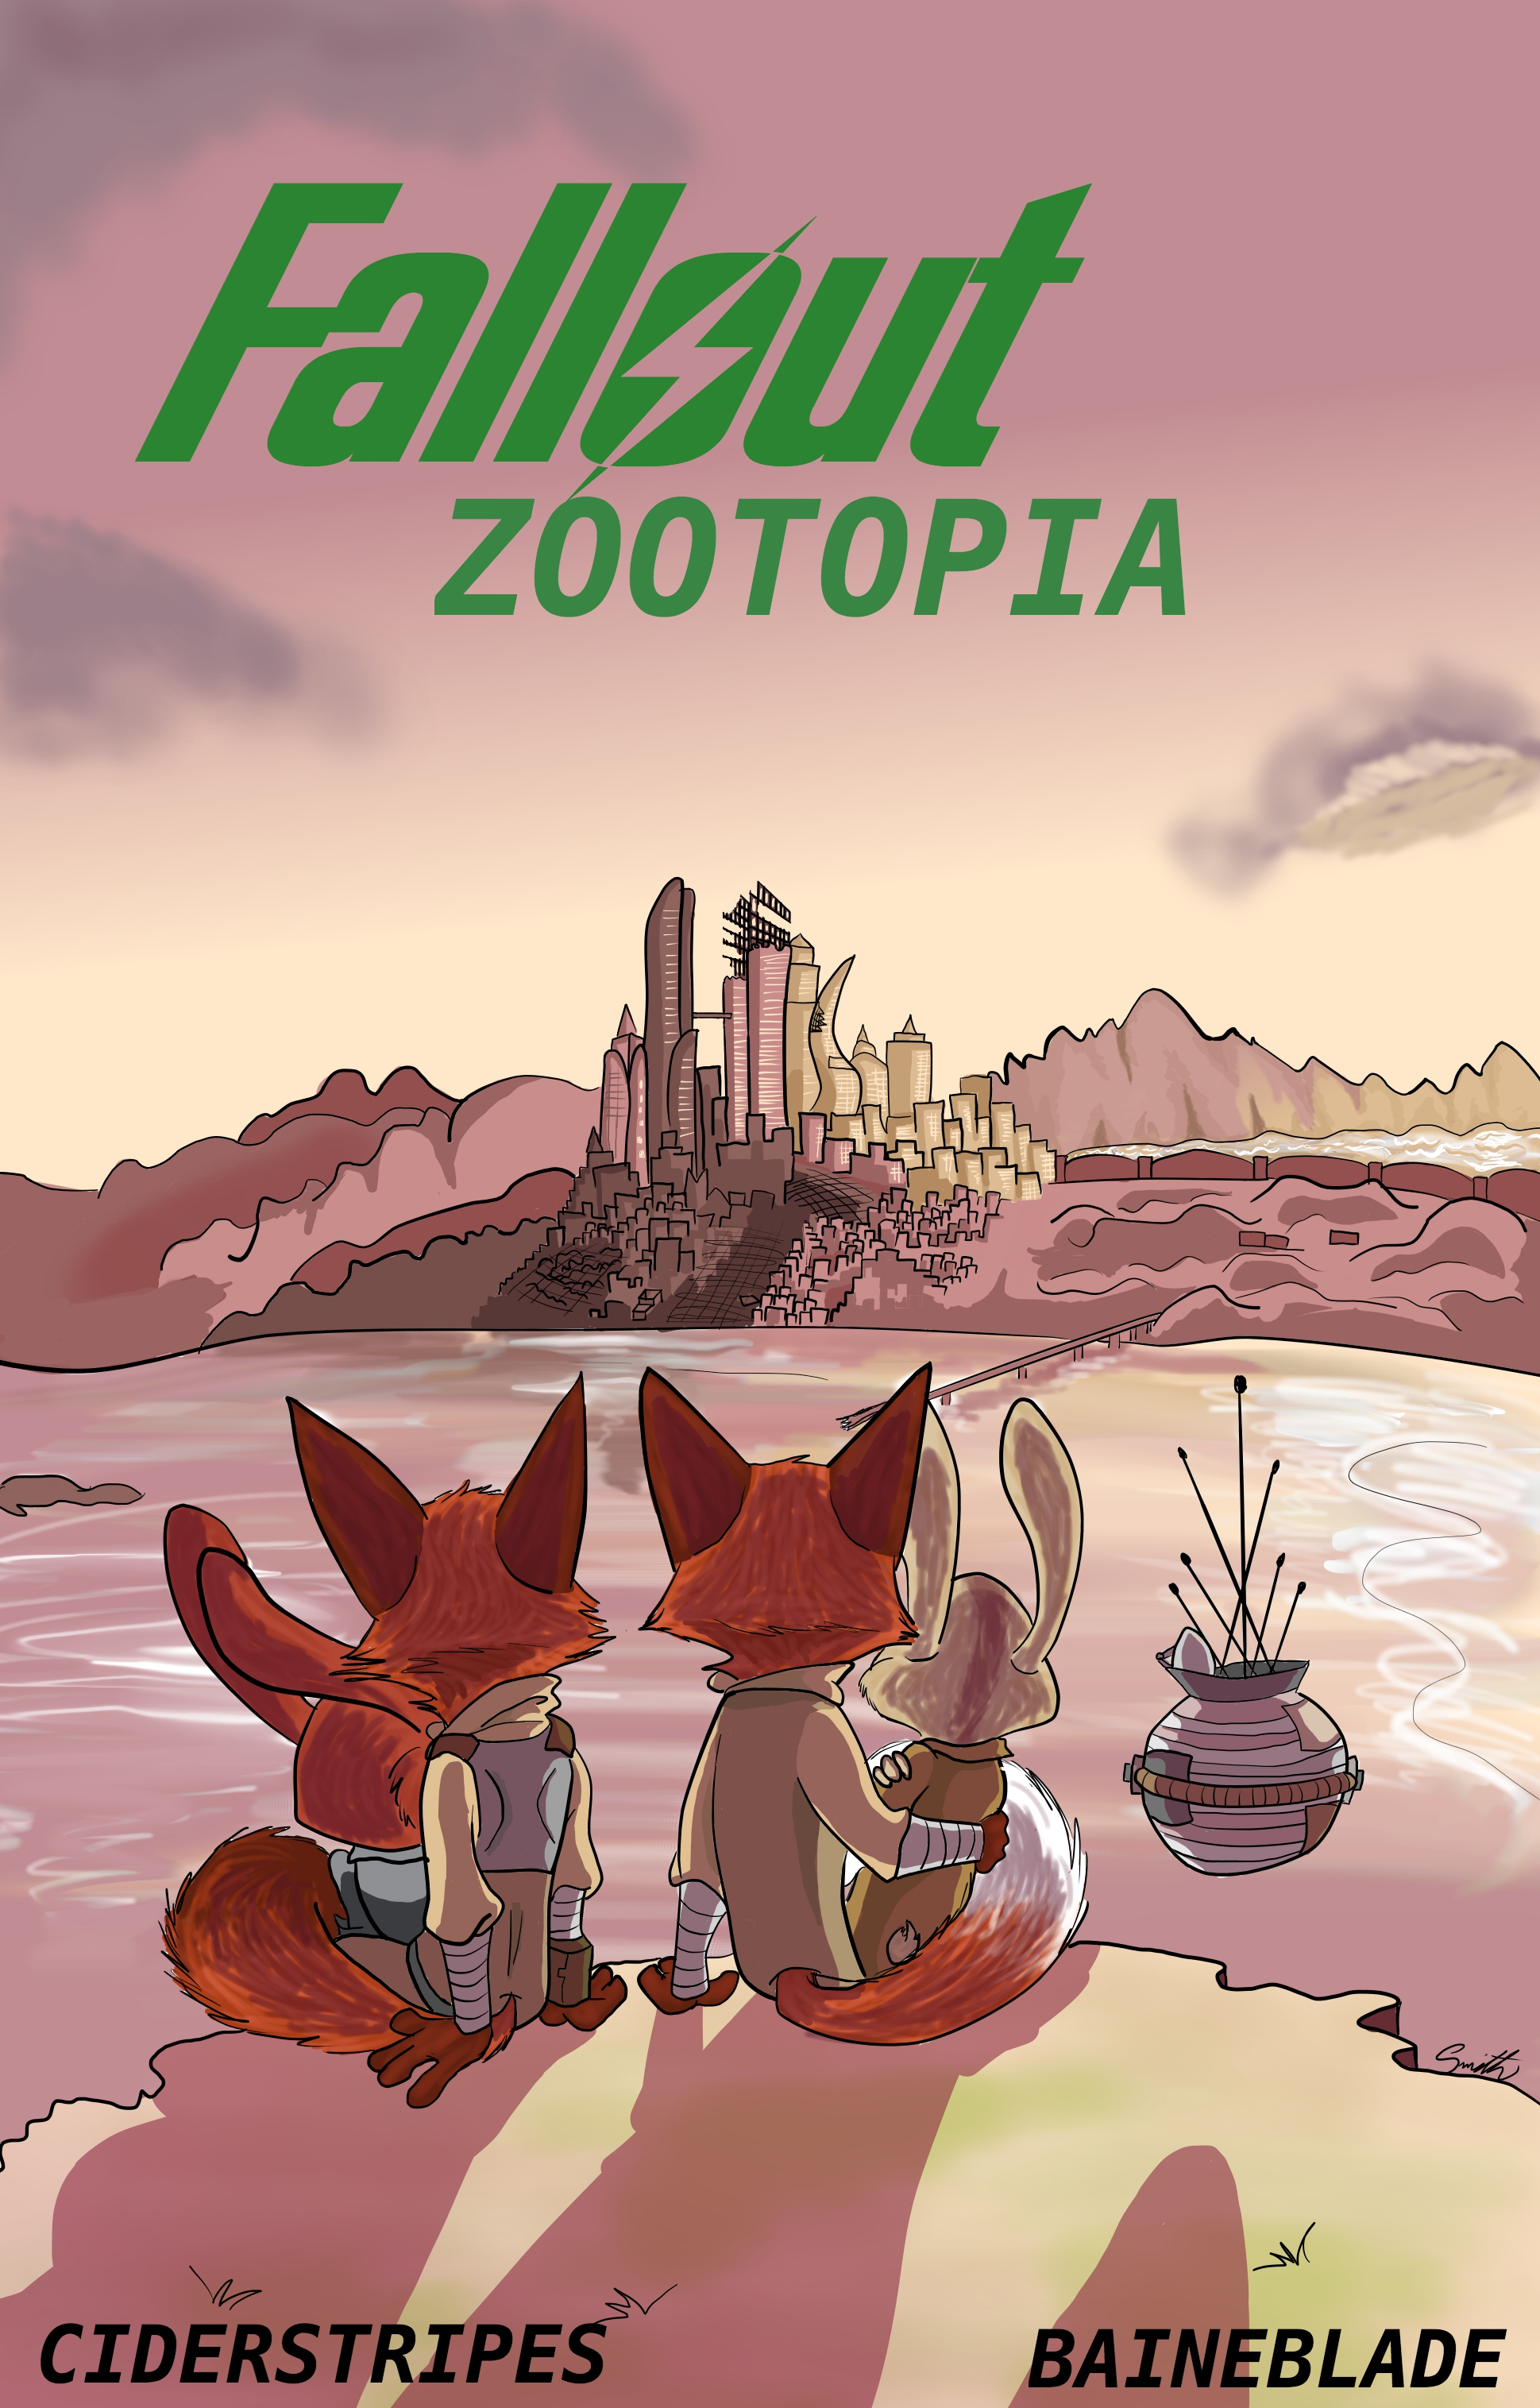 Fallout: Zootopia gets an audiobook!